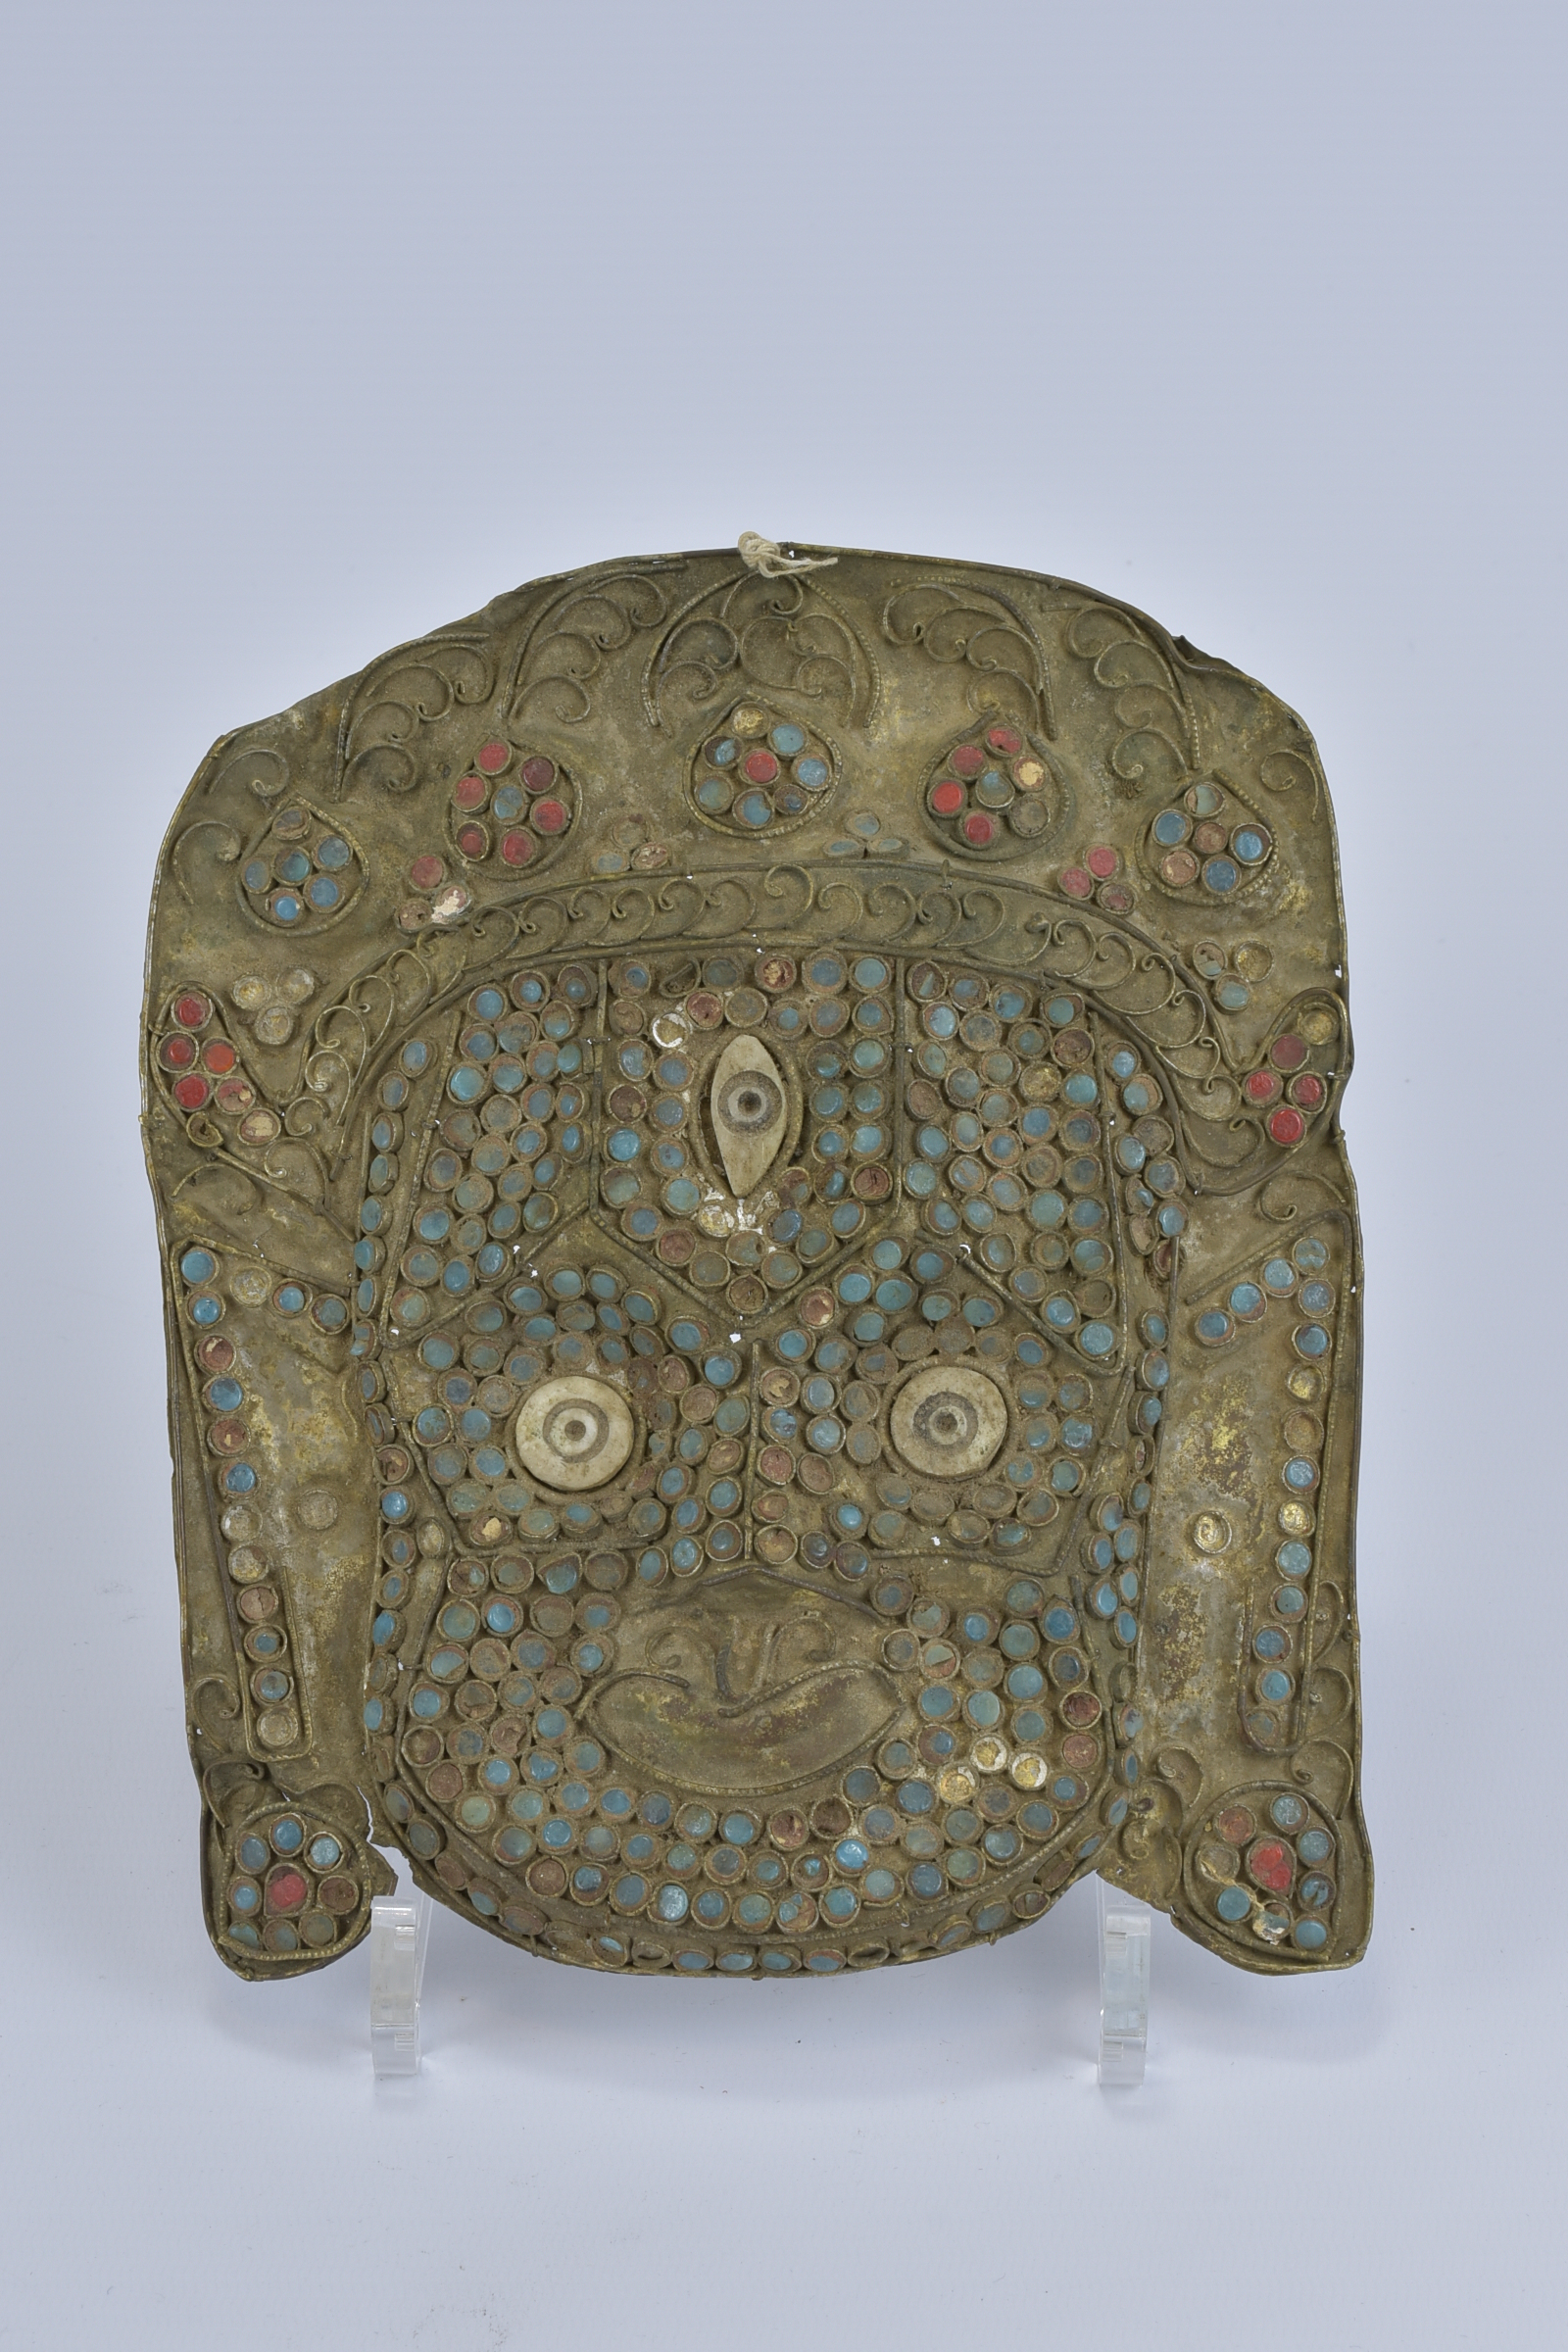 Lot 28 - A Tibetan metal mask fitted with coloured stone inserts. 20cm x 18cm